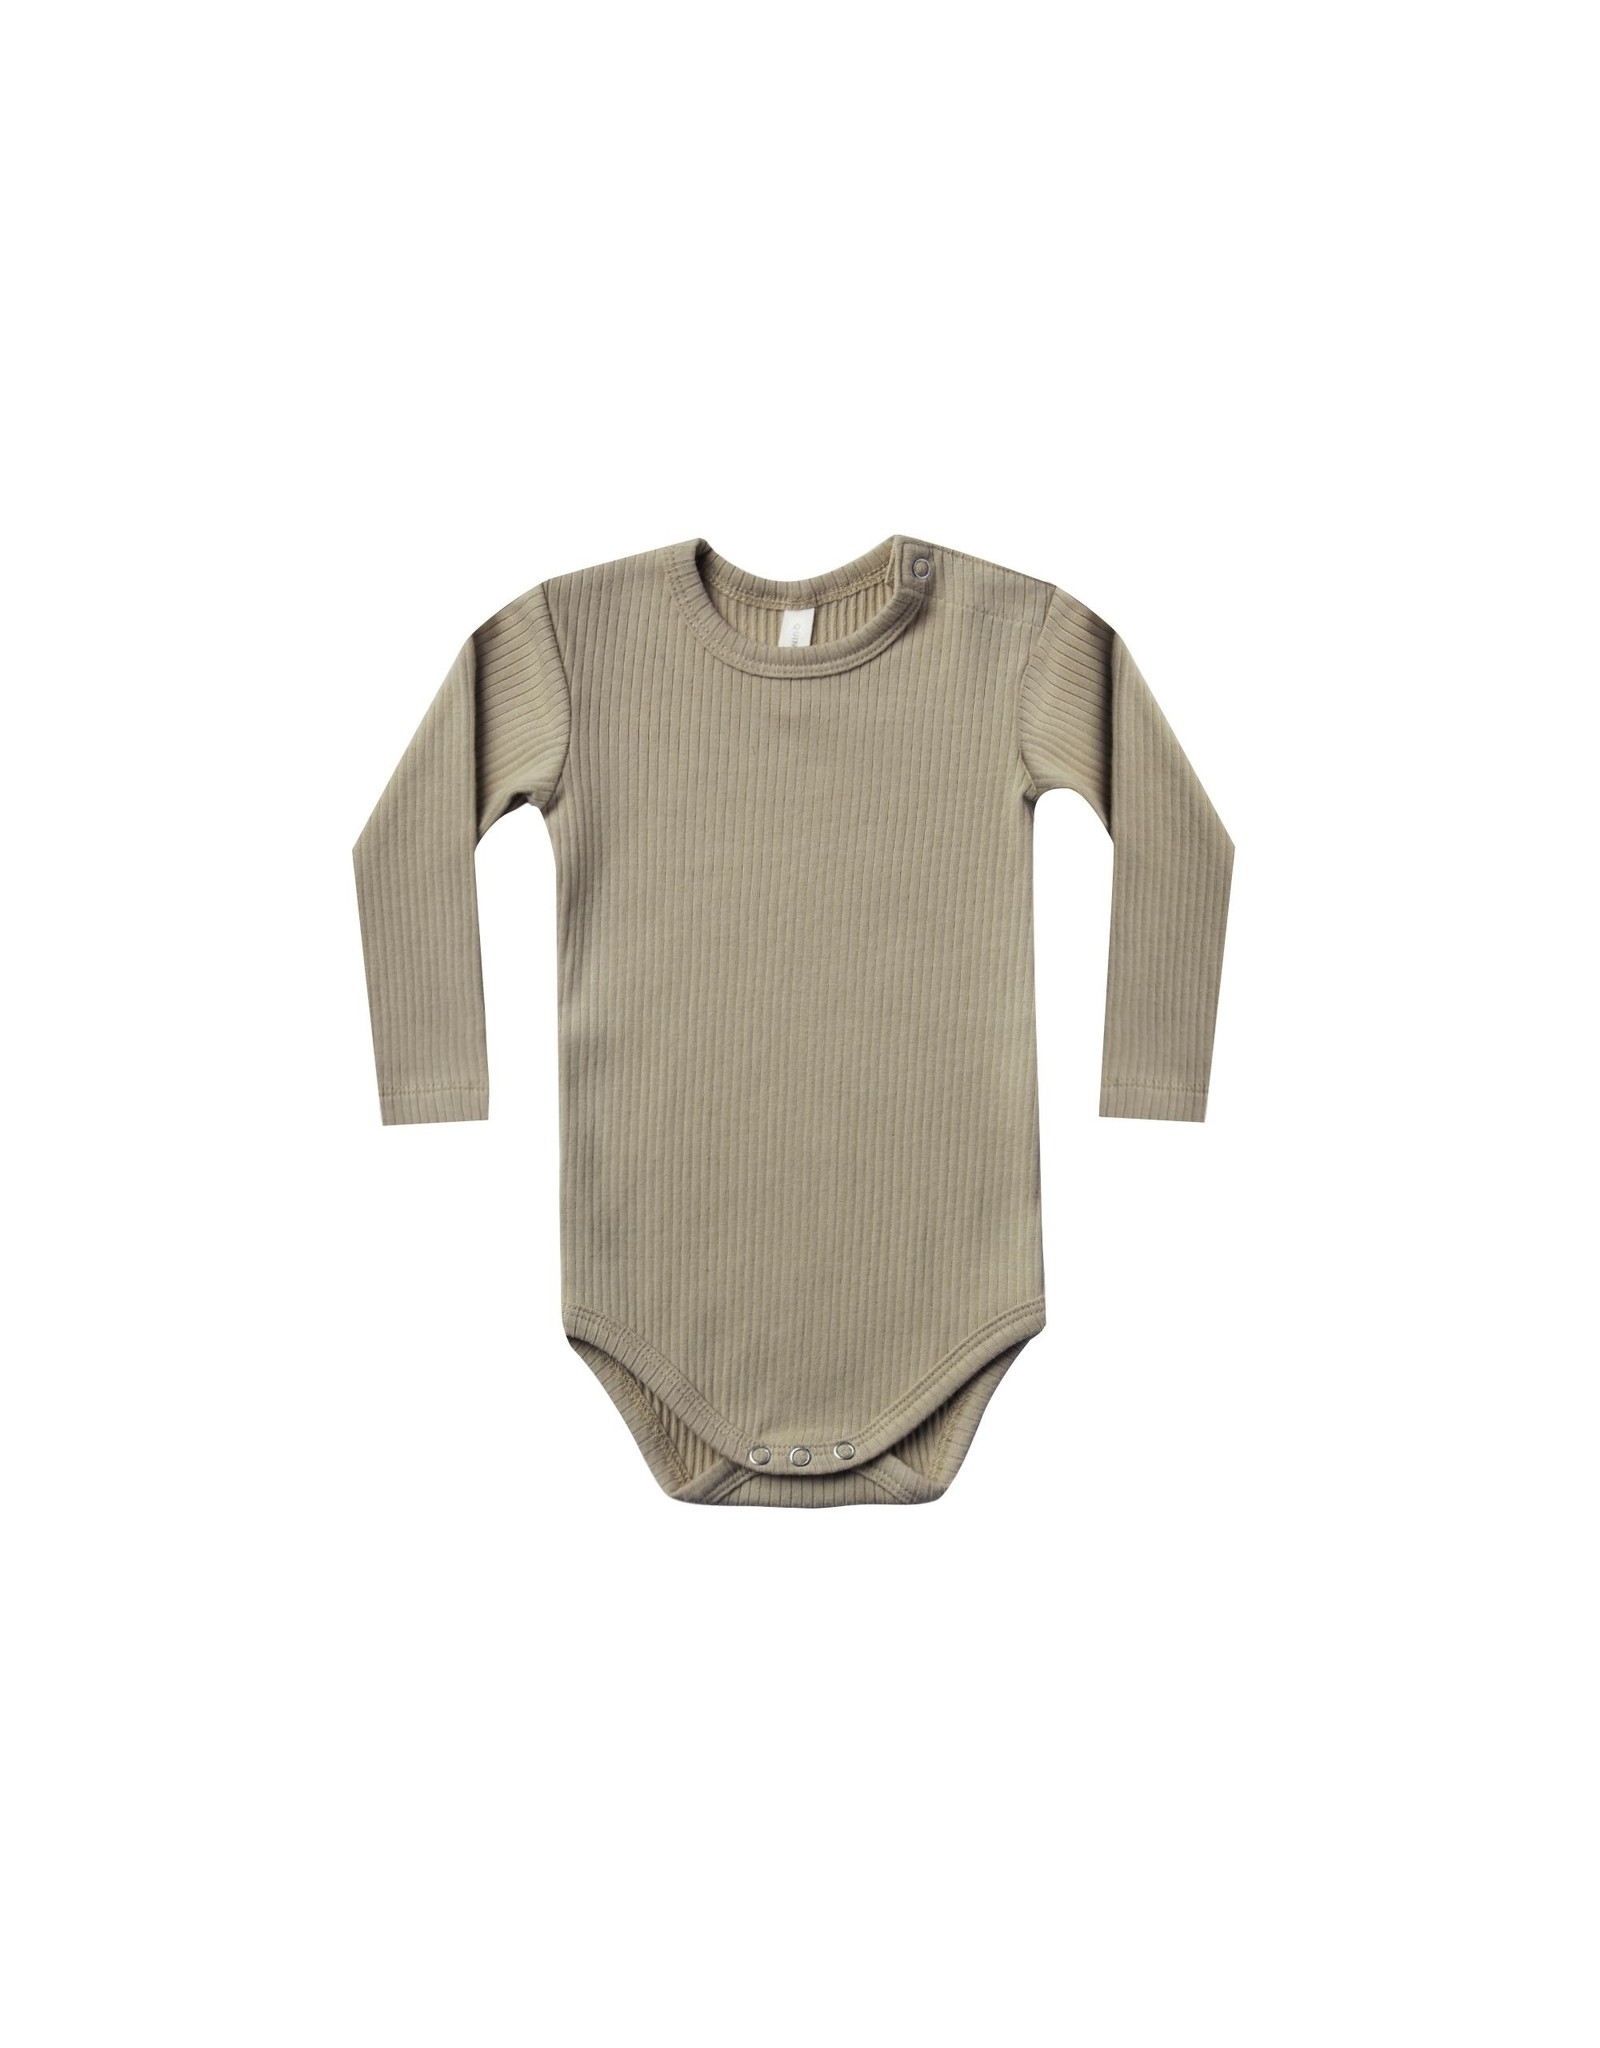 Quincy Mae ribbed l/s onesie- olive